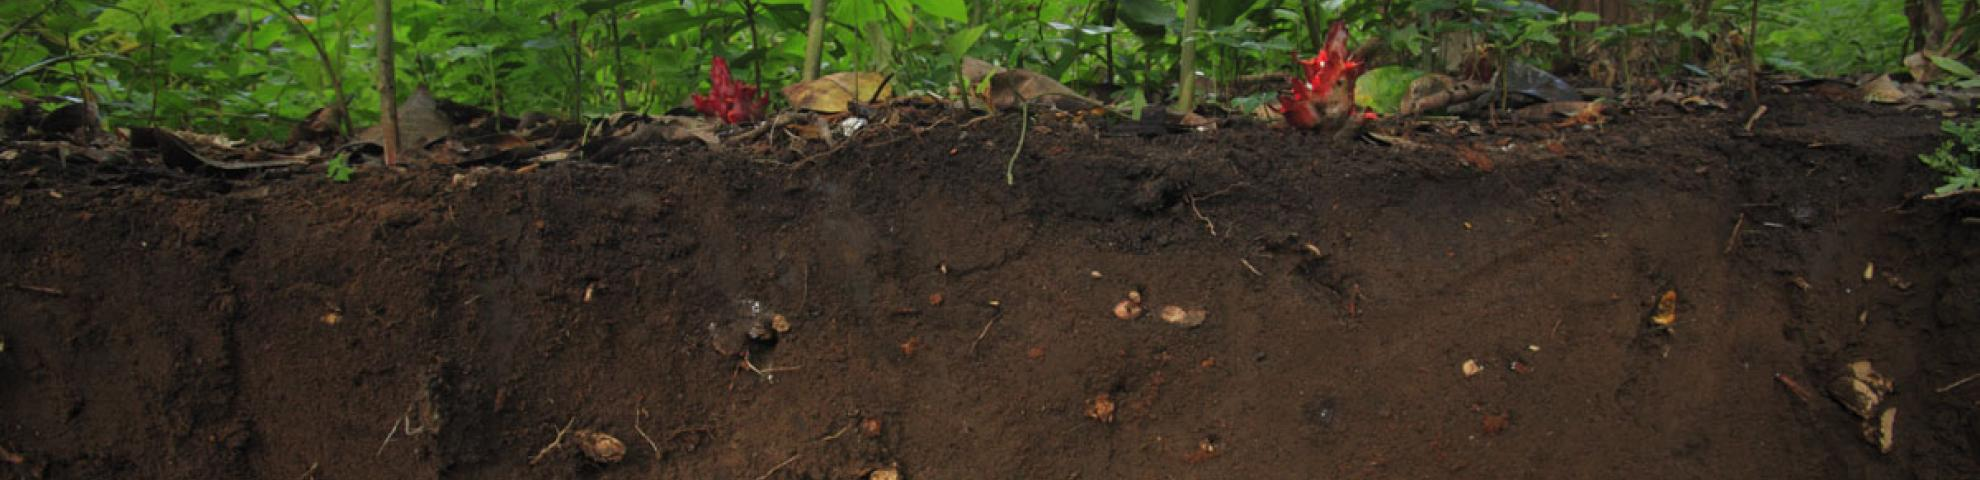 soil profile in a rainforest